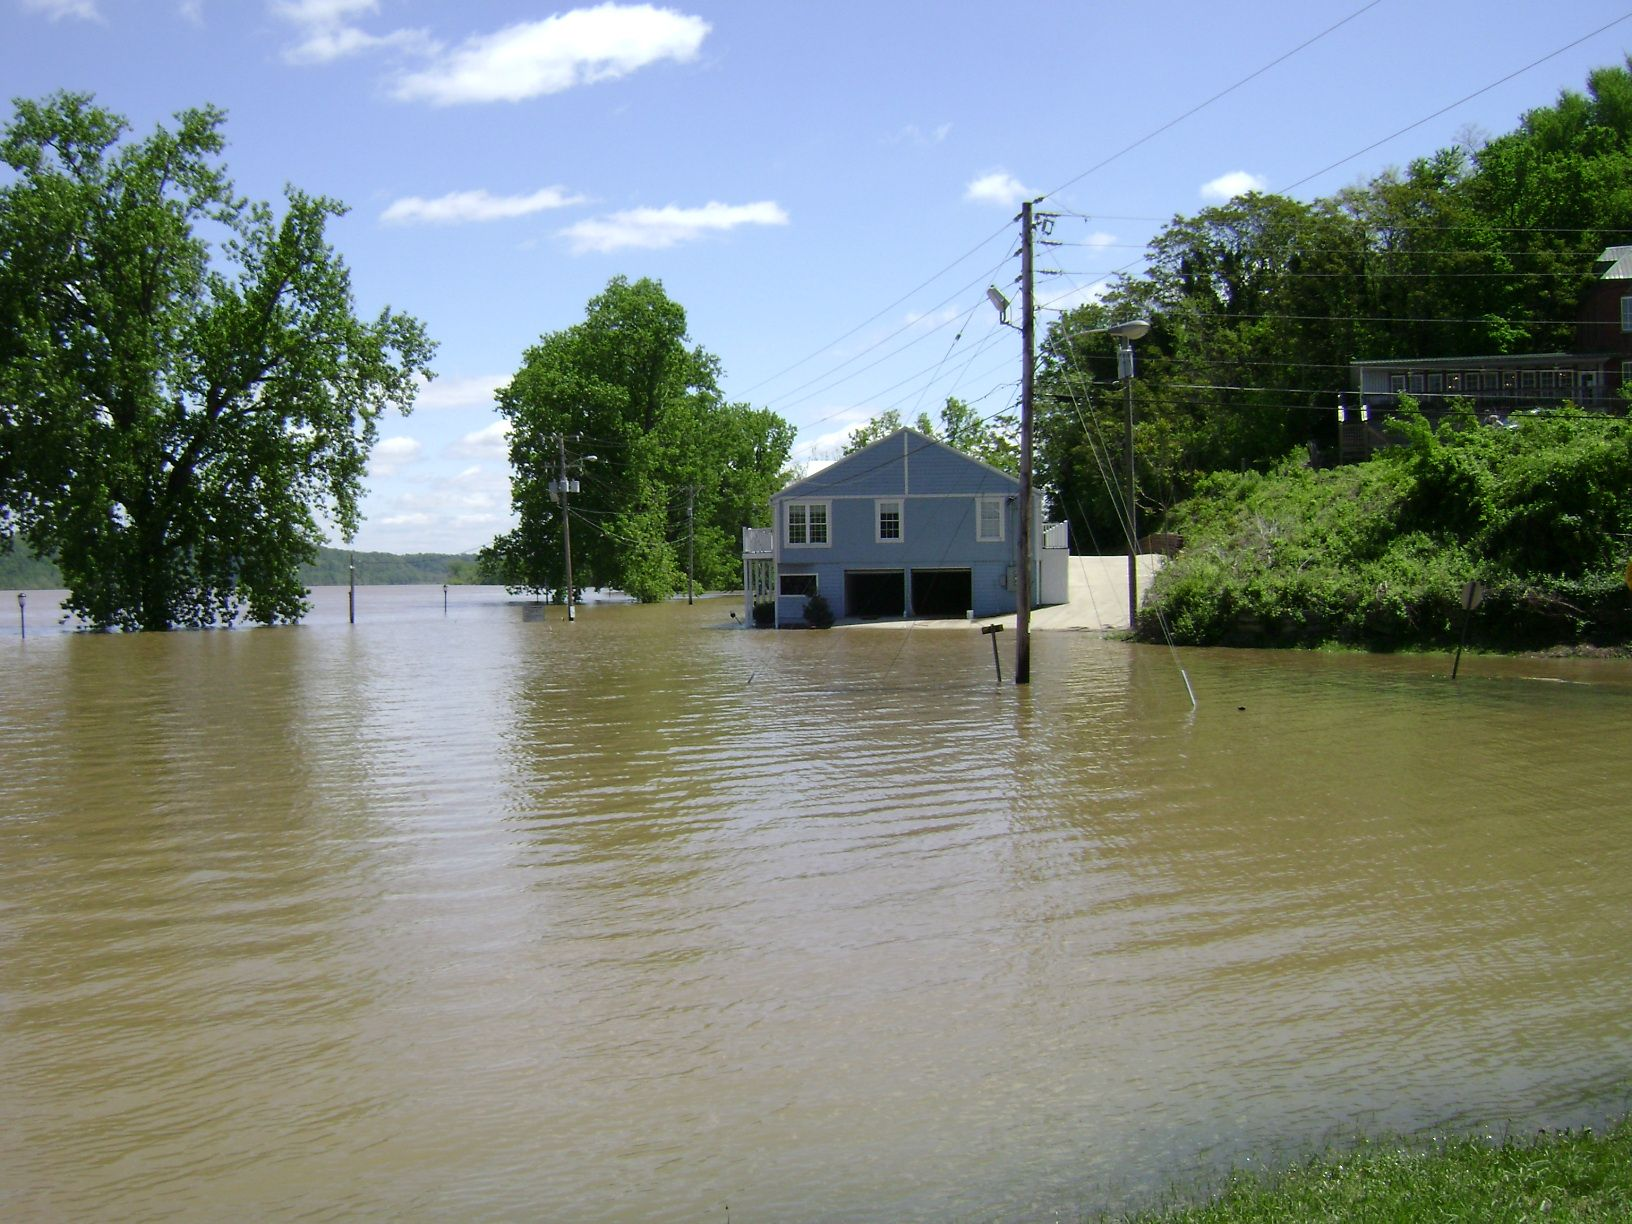 Ohio River Flood on 25 April 2011